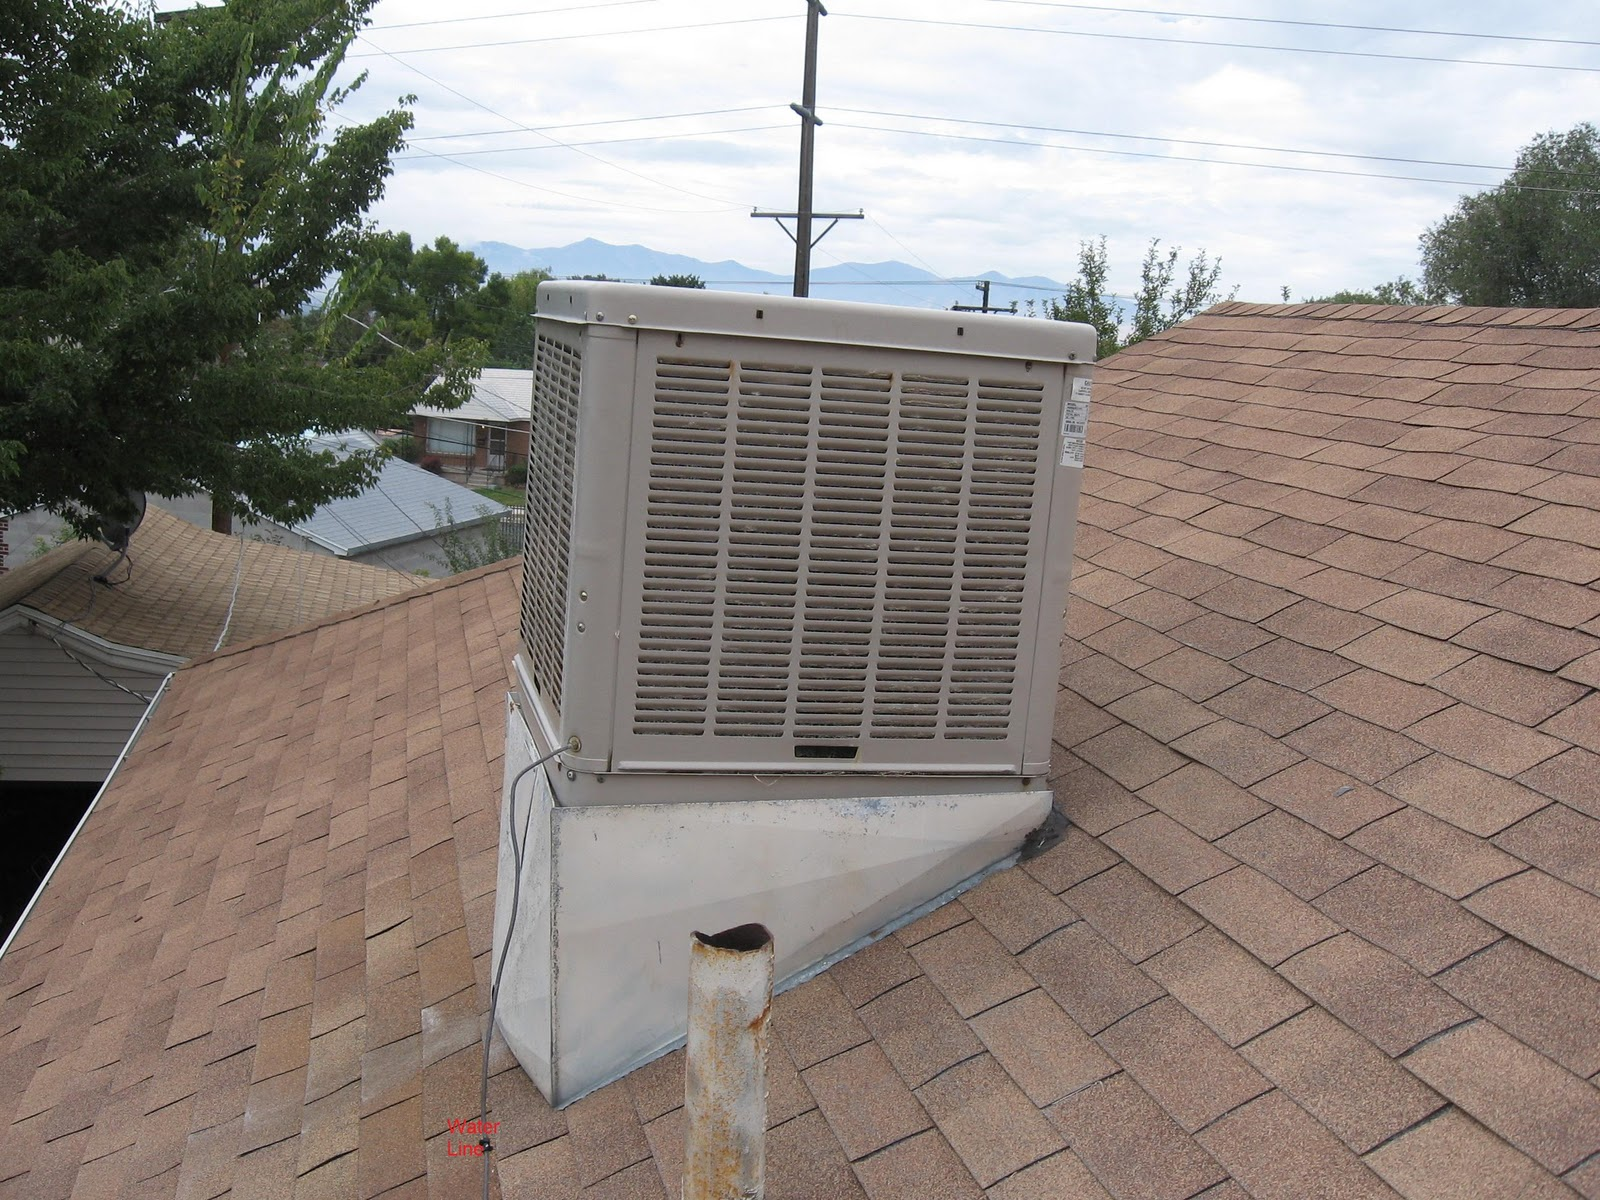 Roof Mounted Swamp Coolers : How it looks from here the second law and swamp coolers